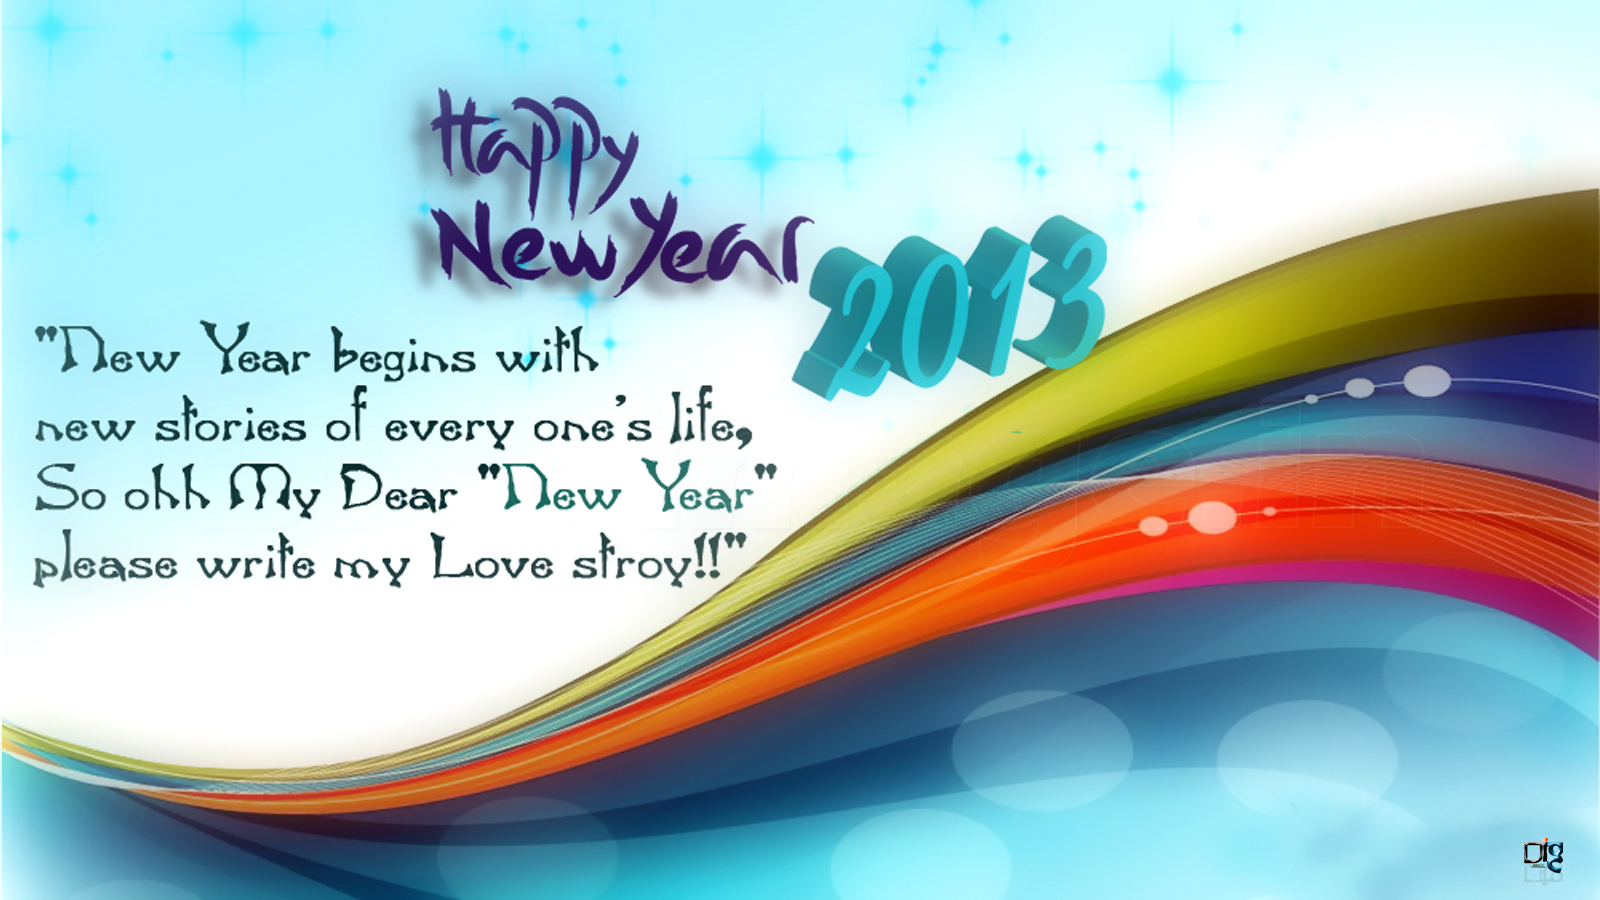 with 2013 new stories of every one s life so ohh my dear new year